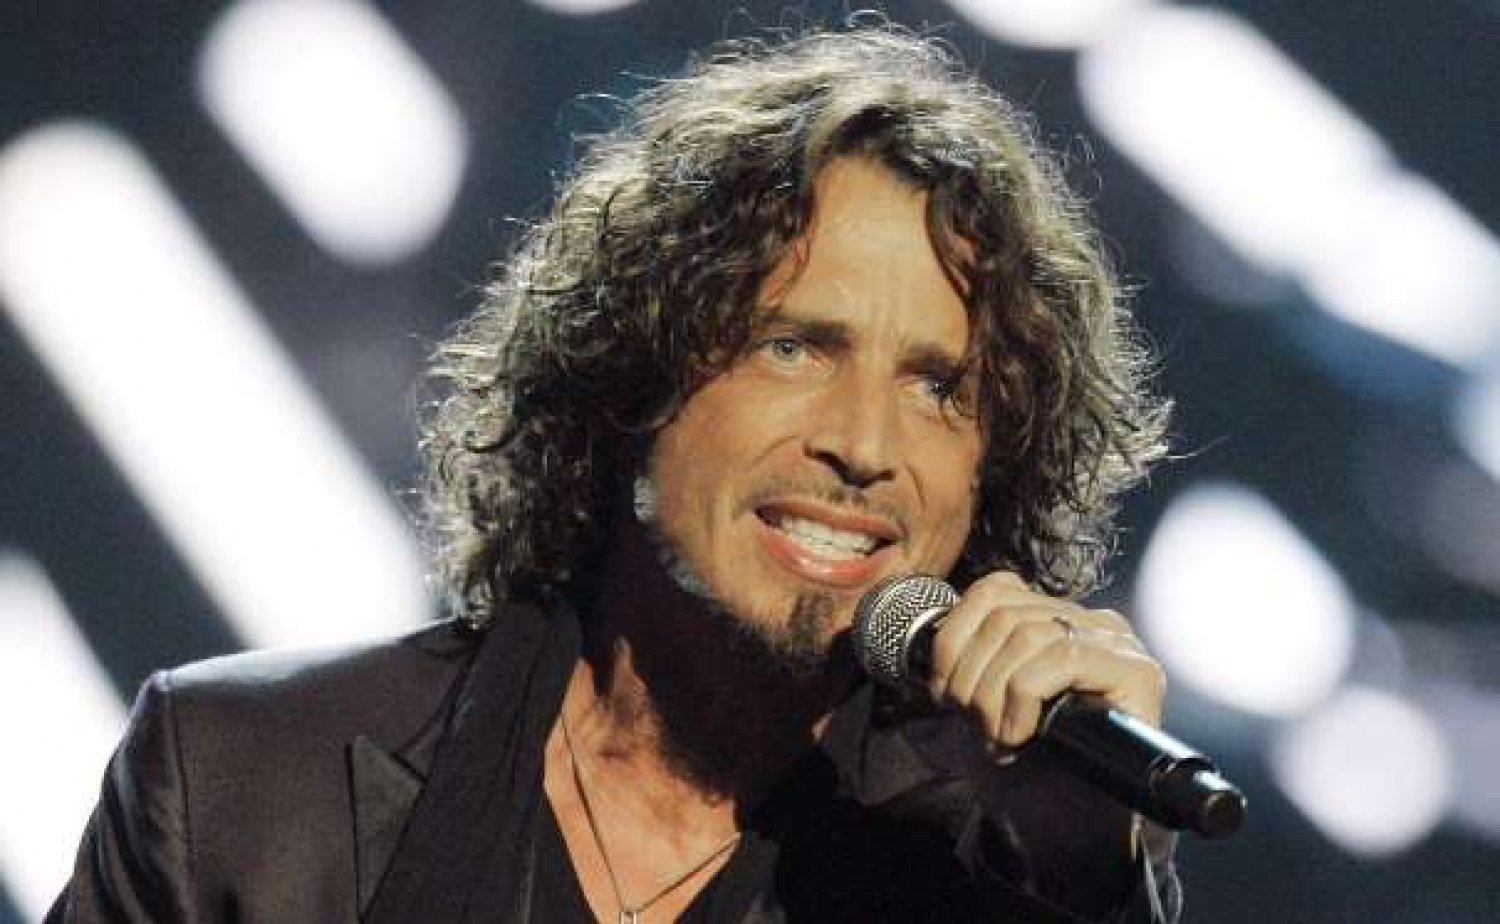 Muere Chris Cornell, líder de Soundgarden y Audioslave-33761